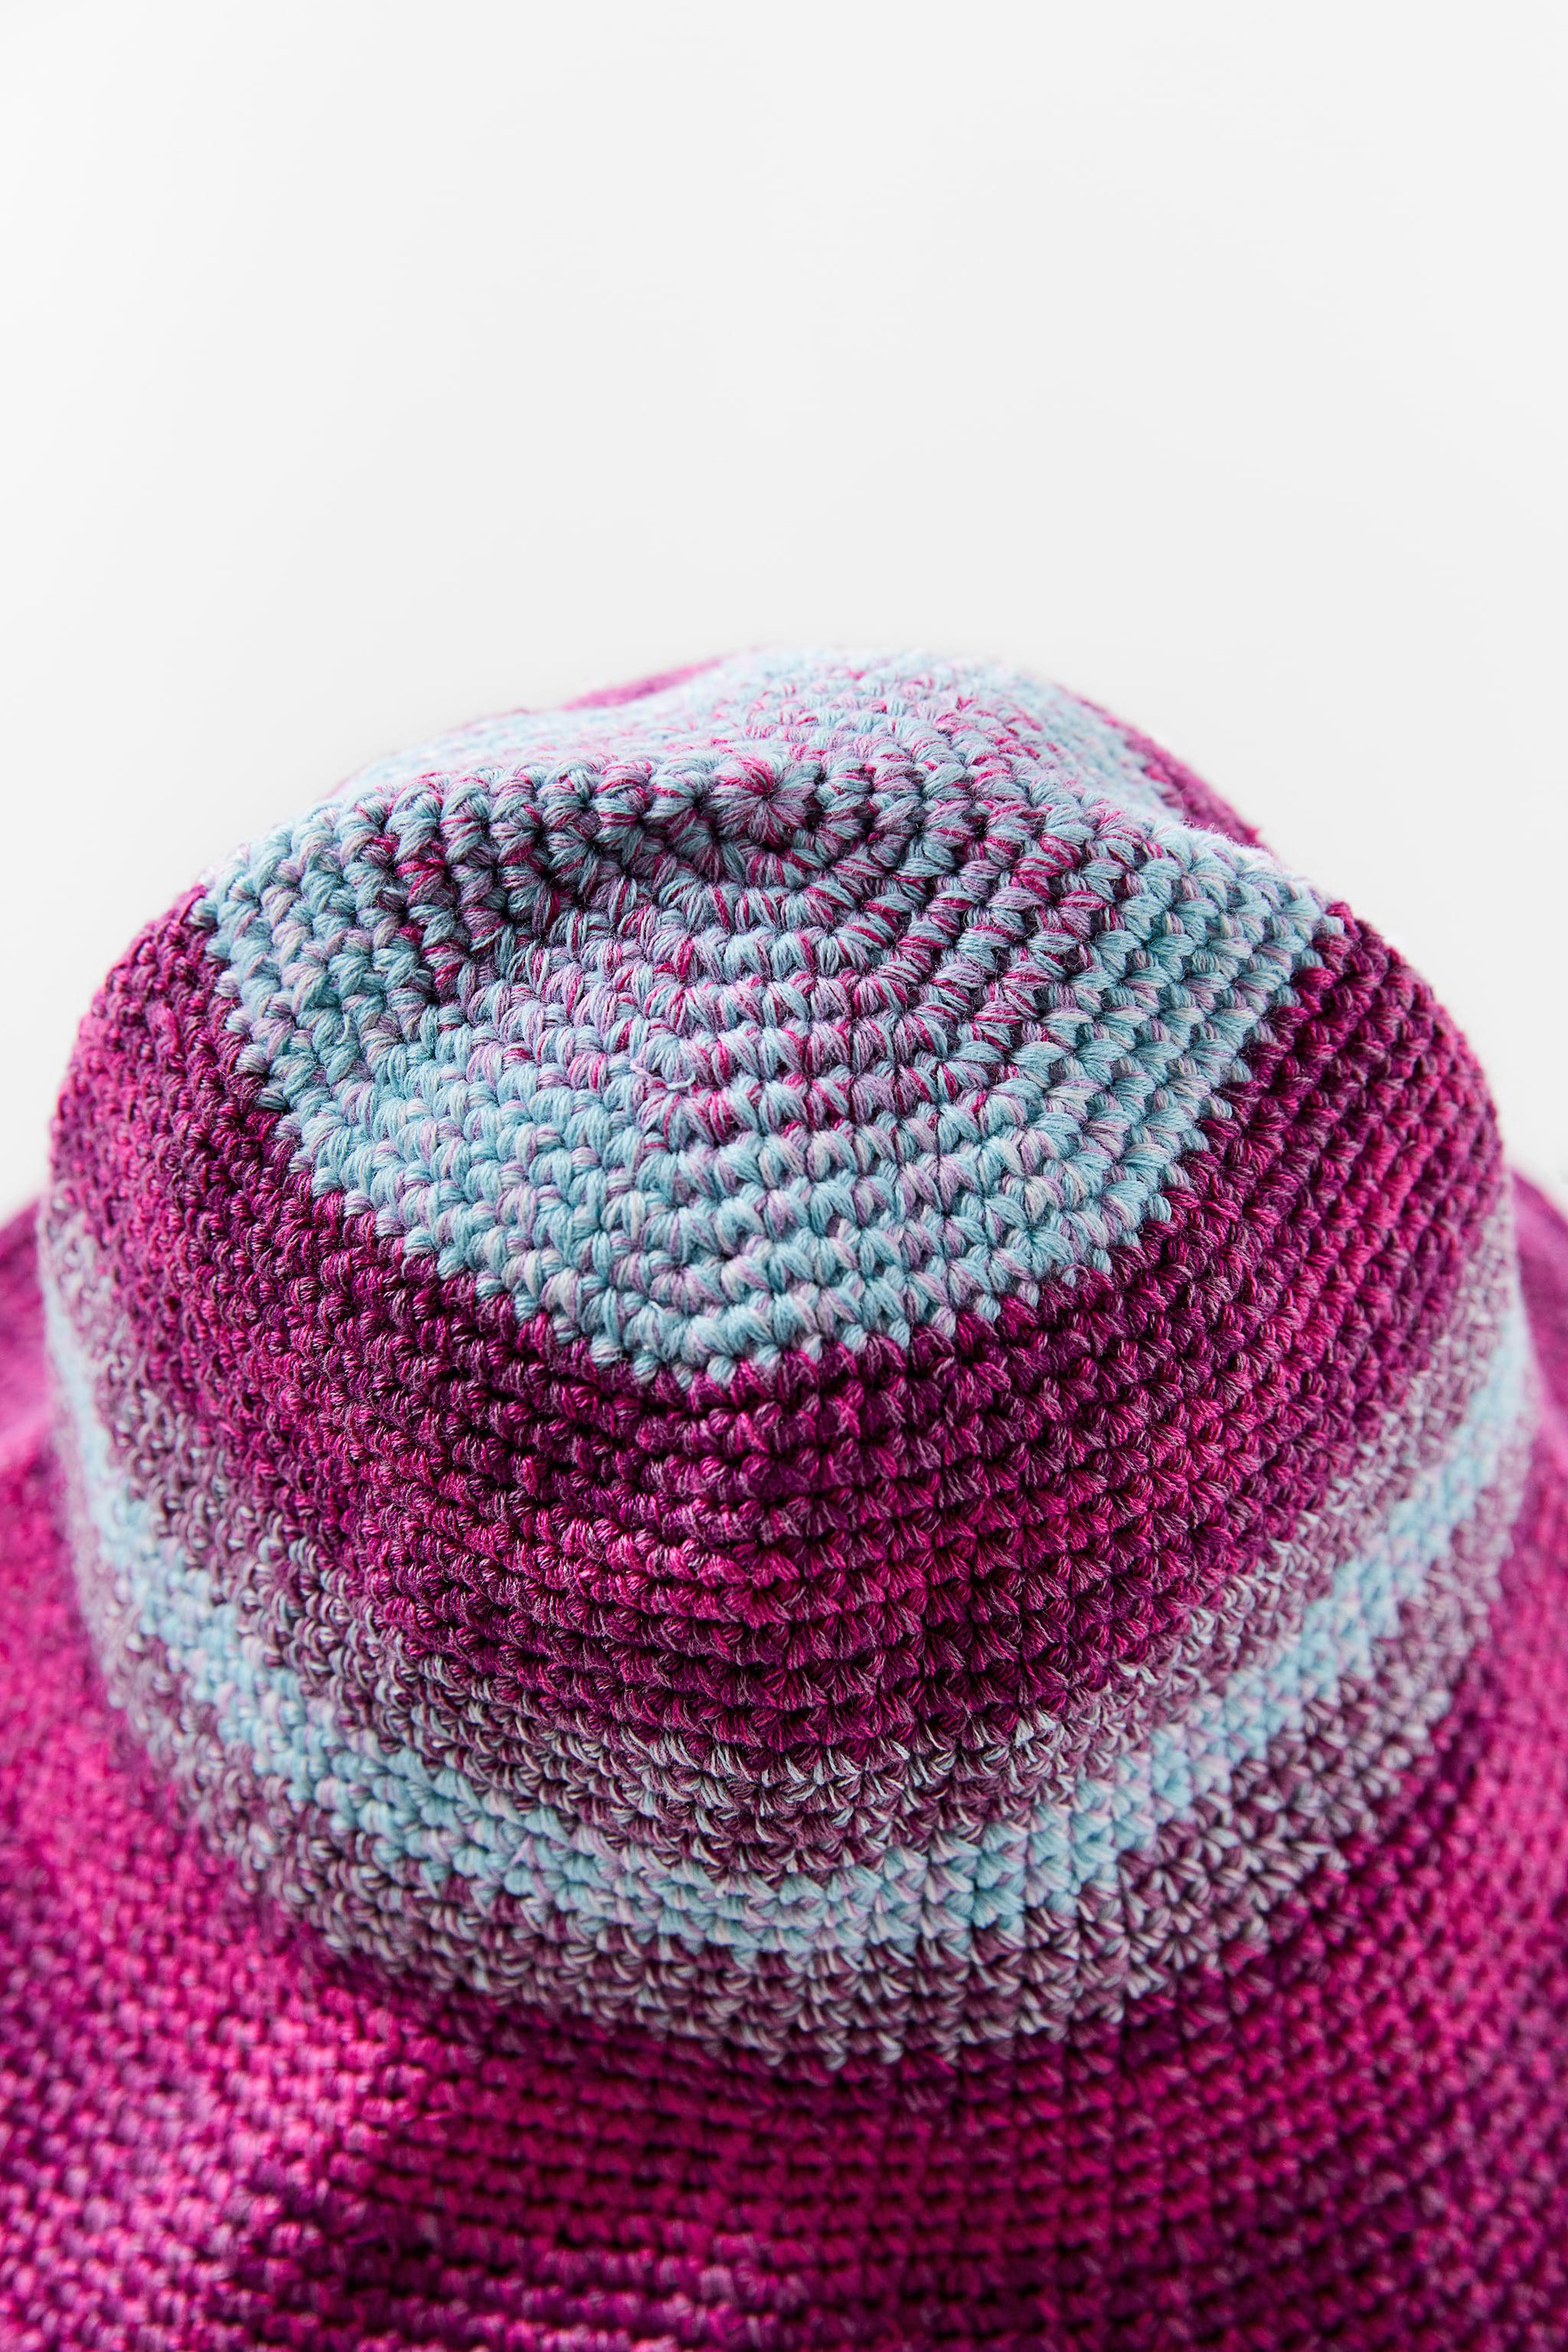 MULTICOLORED CROCHETED HAT 2